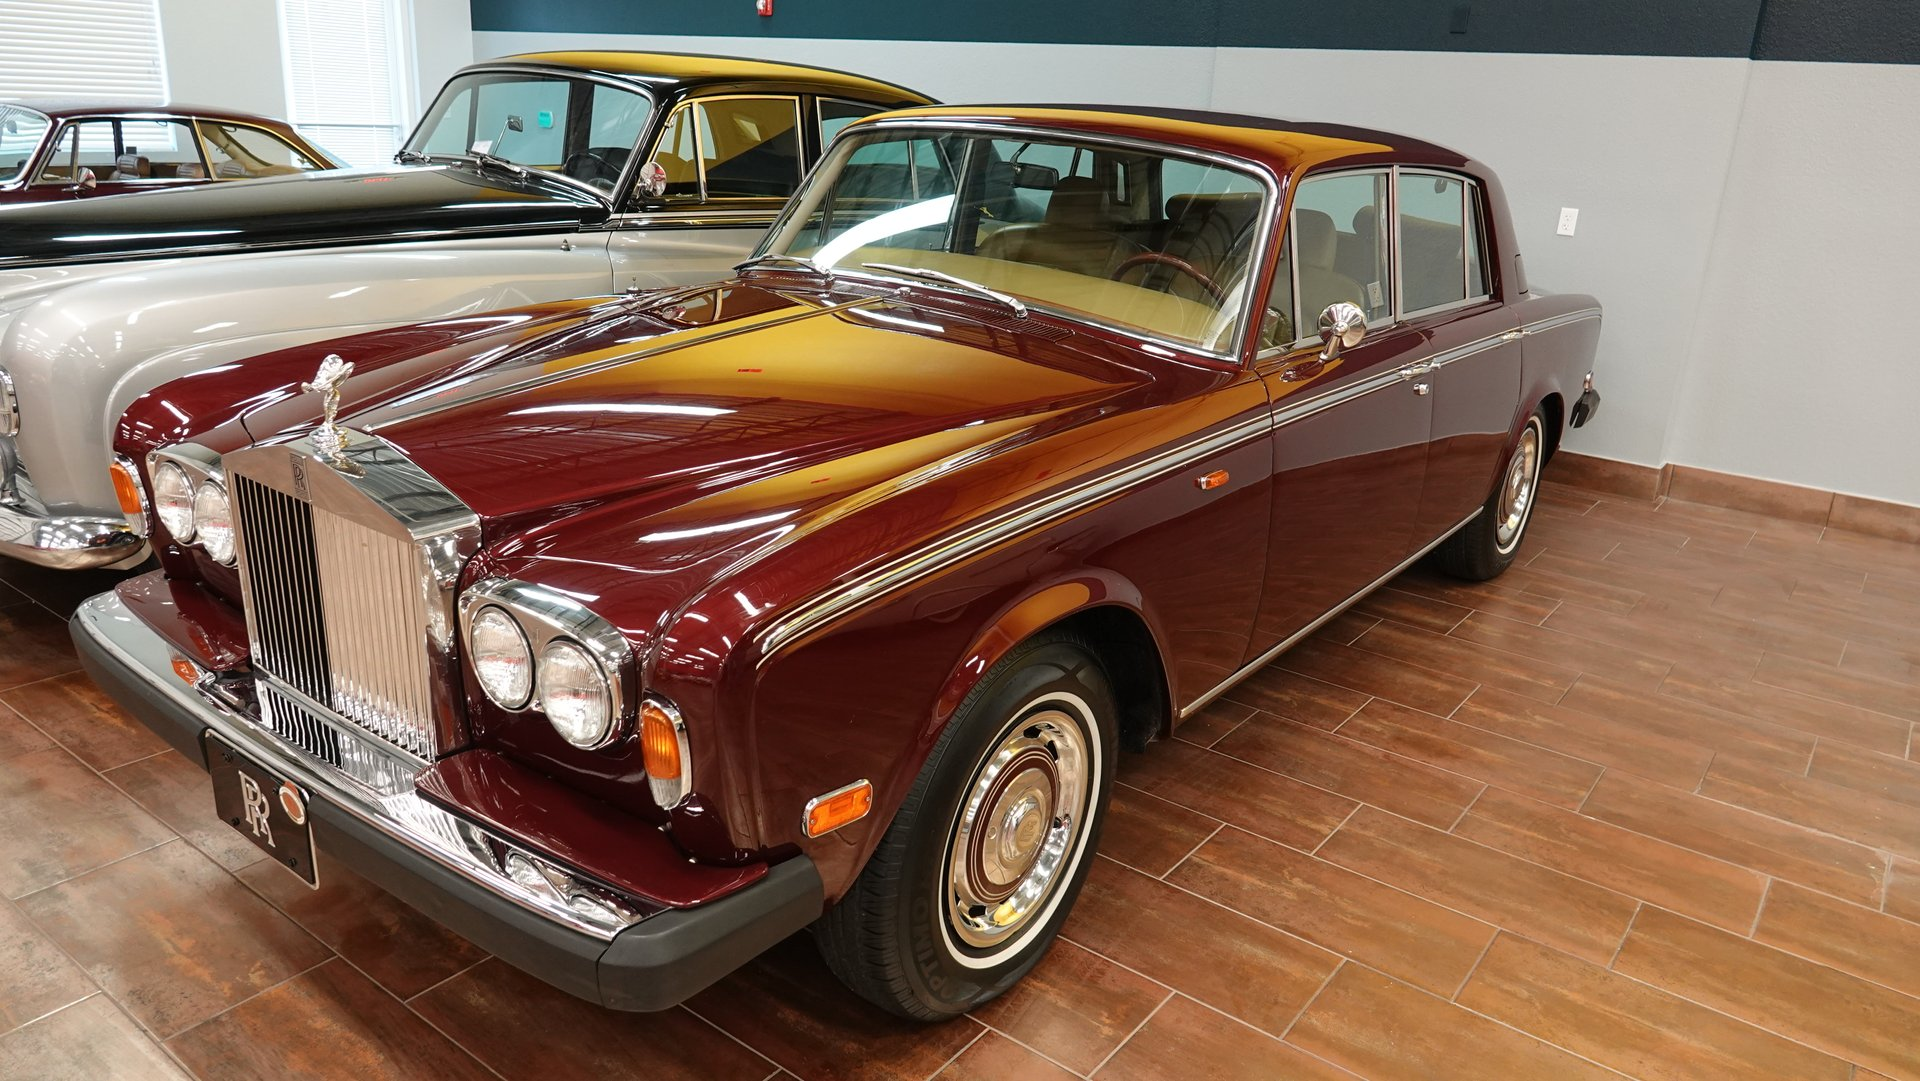 1976 rolls royce silver shadow sedan